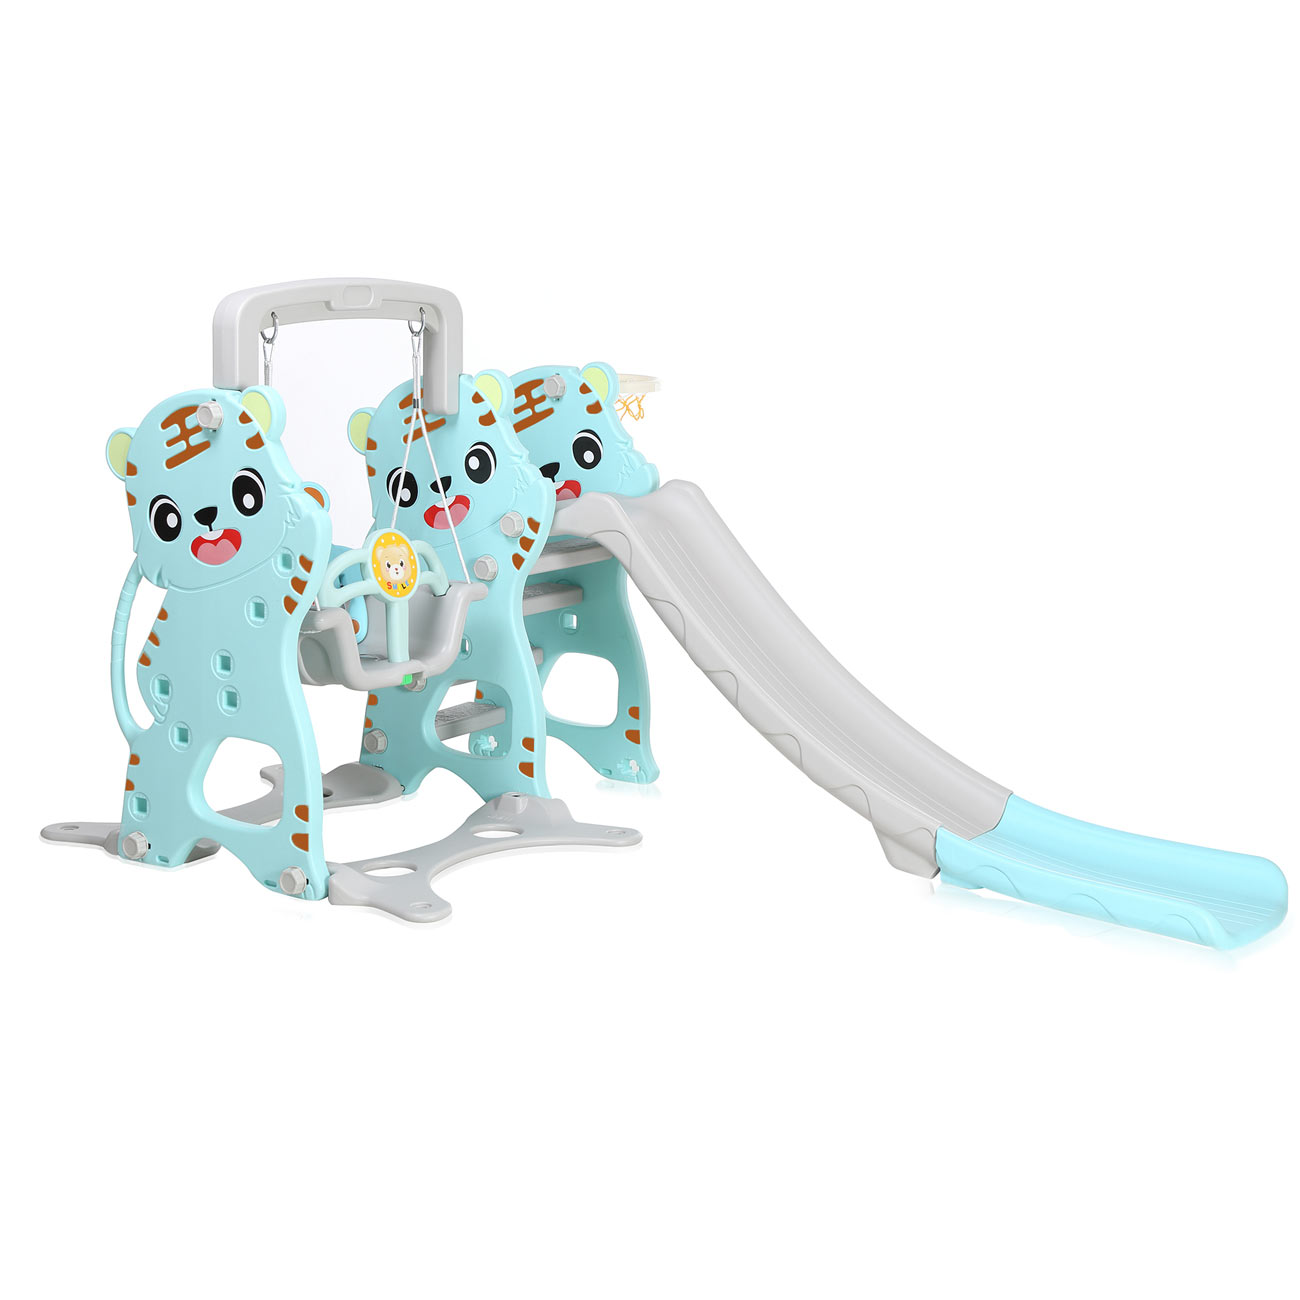 Full Size of Klettergerüst Indoor Diy Baby Vivo Kids Swing Playground With Slide For And Outdoor Garten Wohnzimmer Klettergerüst Indoor Diy